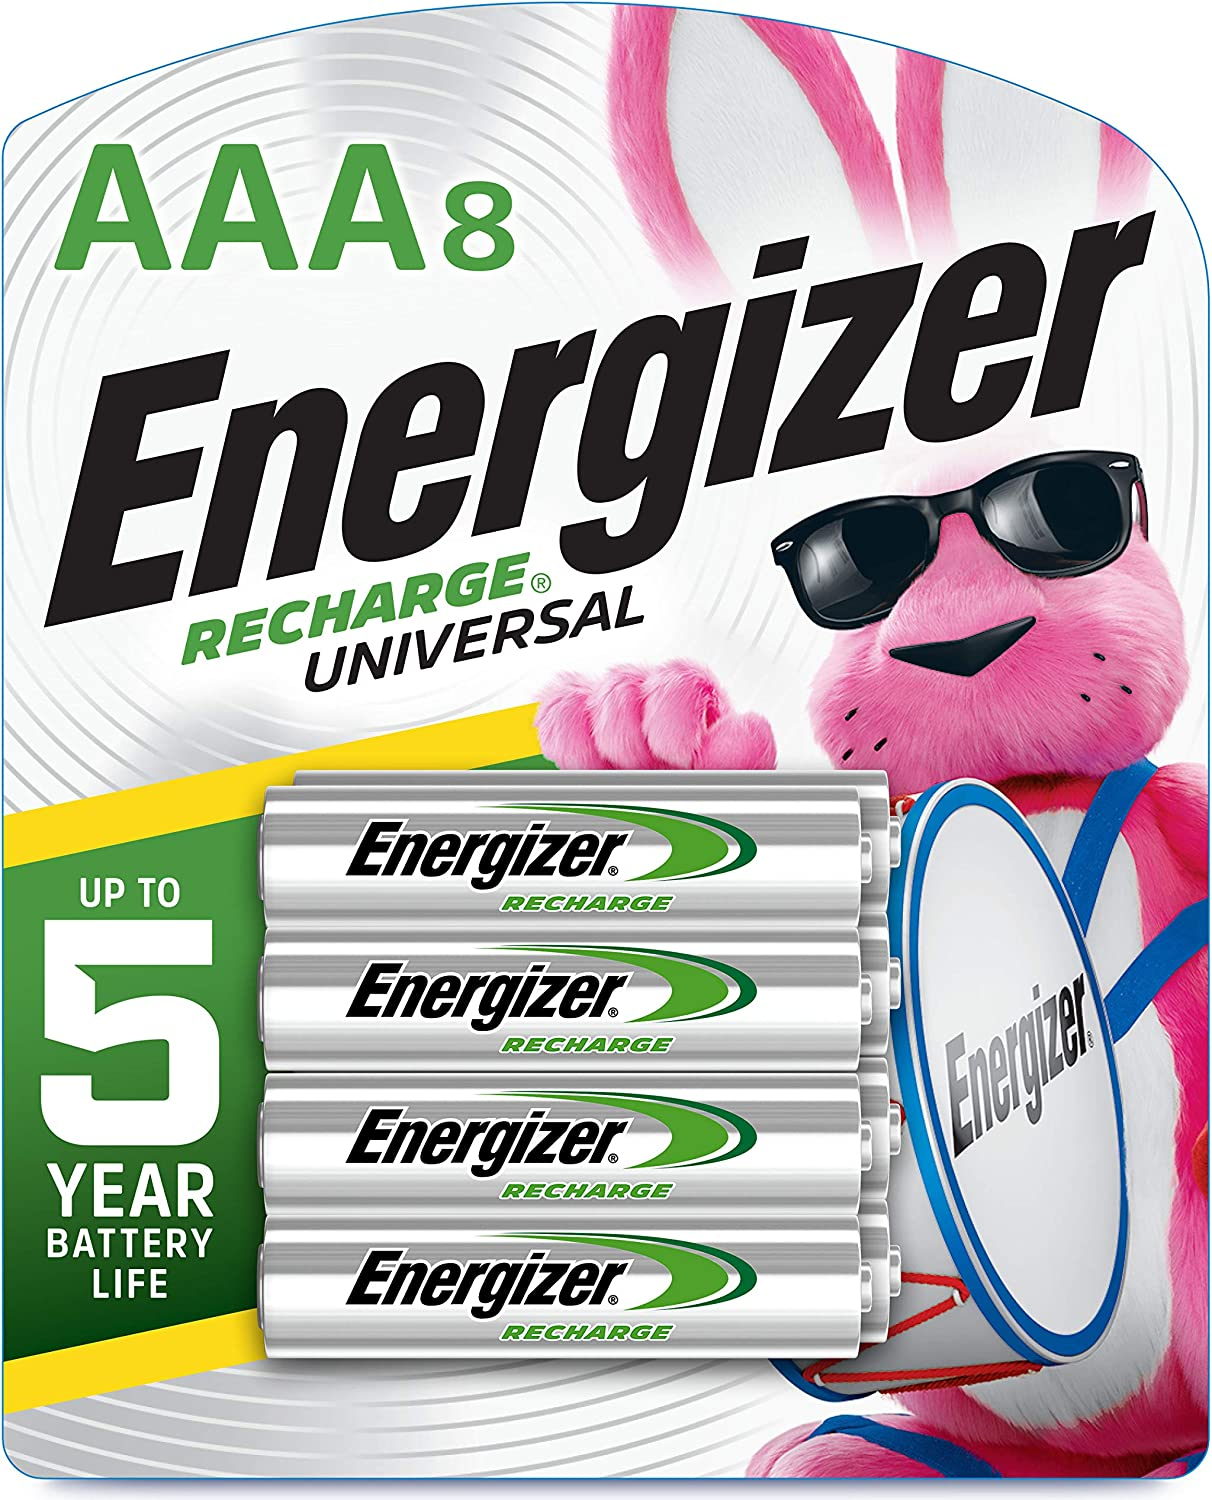 Energizer Rechargeable AAA Batteries, 700 mAh NiMH, Pre-charged, Chargeable for 1,000 Cycles, 8 Count (Recharge Universal)